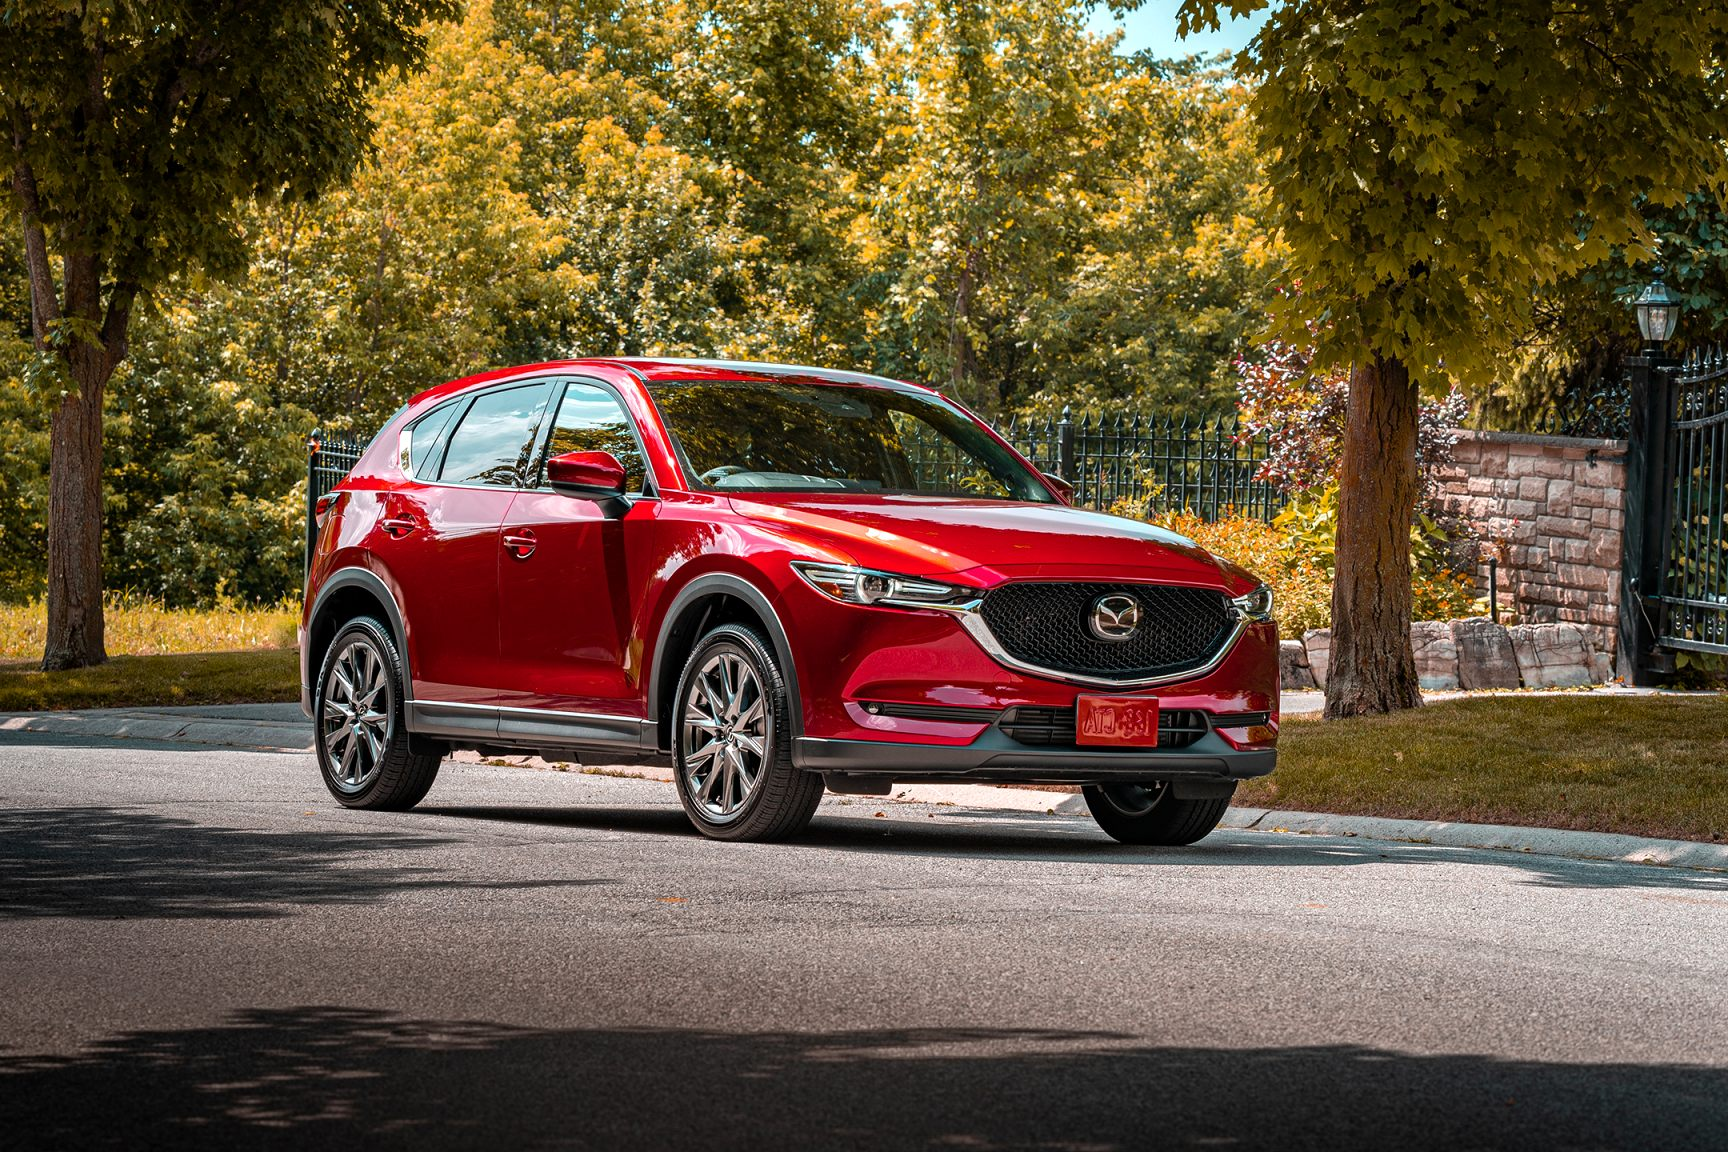 mazda price list 2020 Price and Review